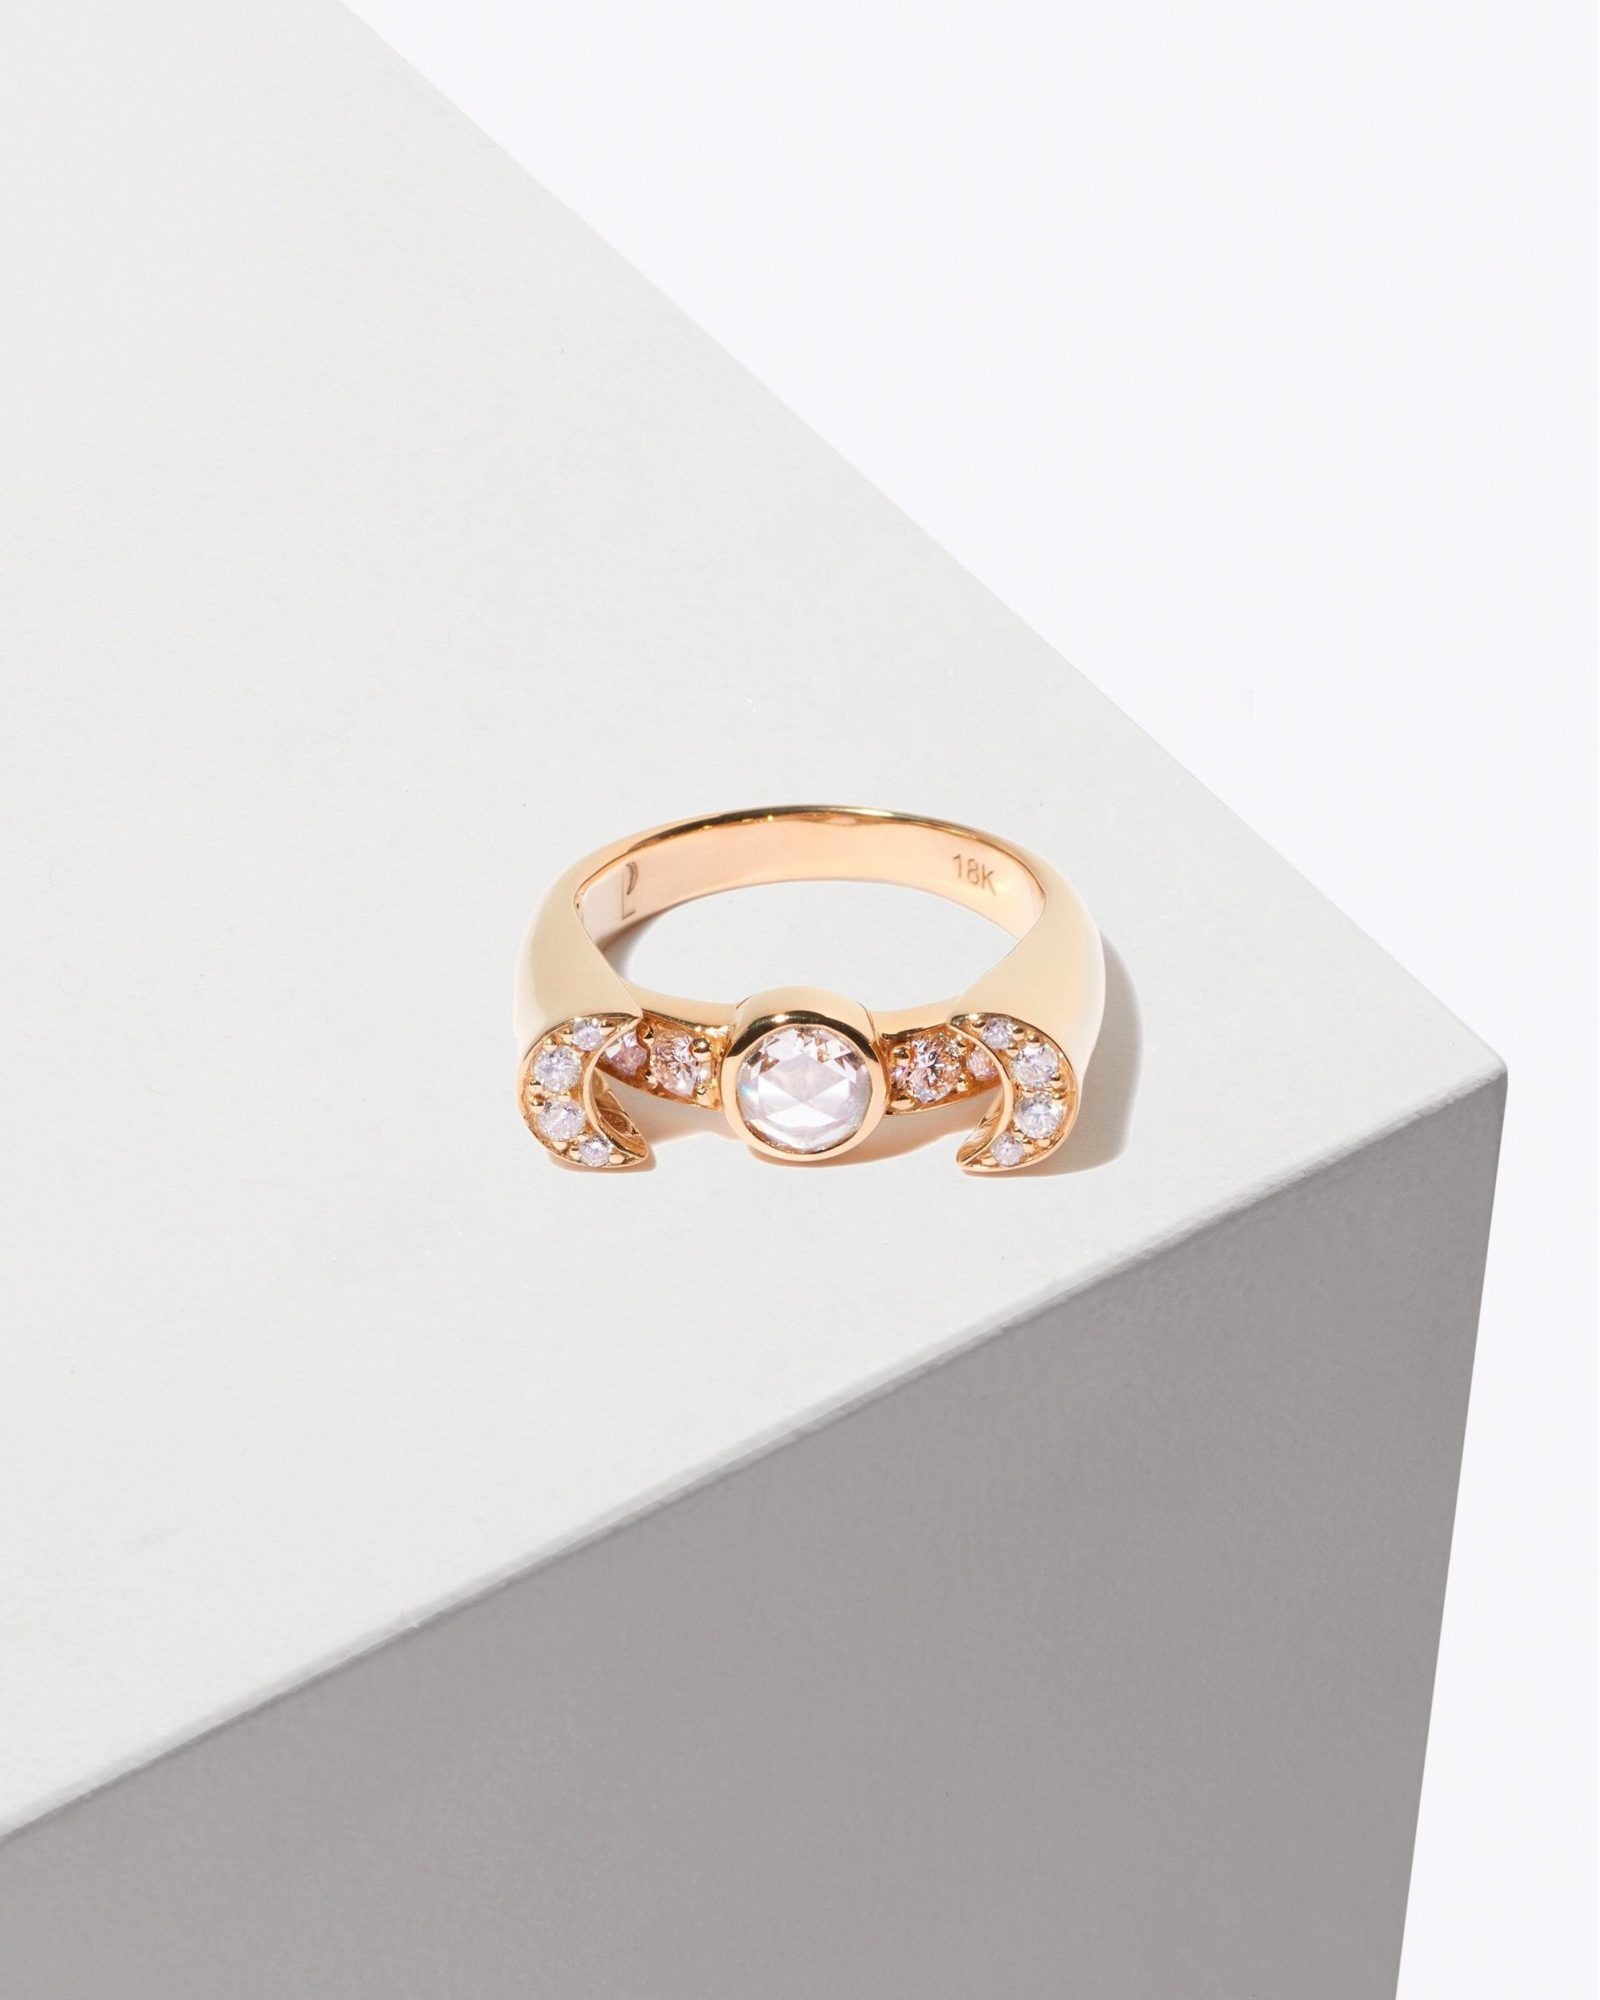 yellow gold with rose cut white diamonds engagement ring